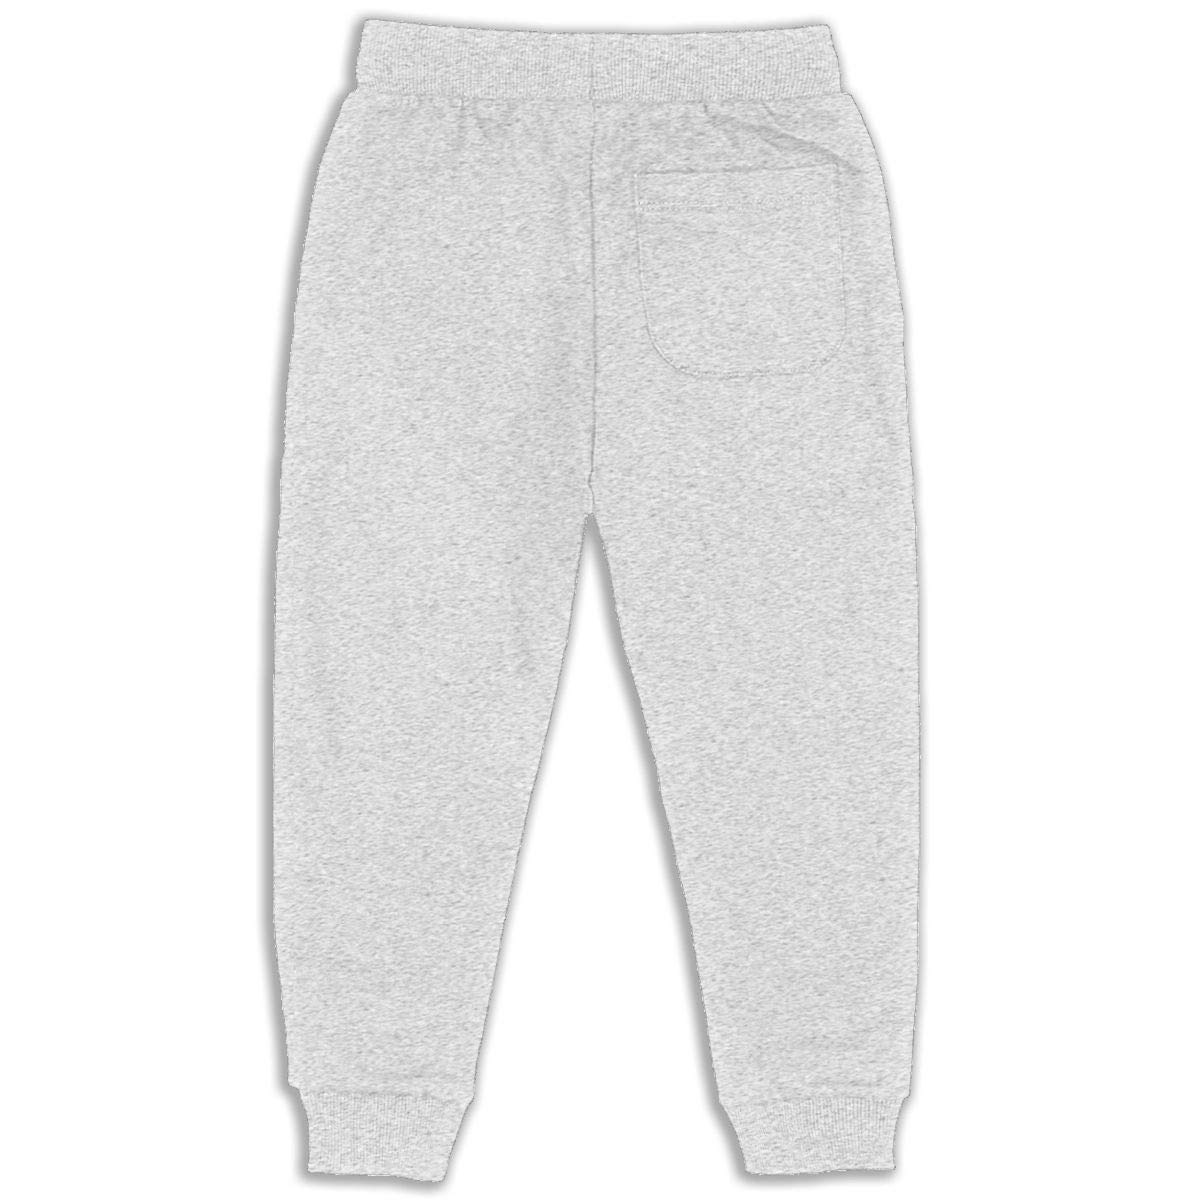 DaXi1 Pug Dog Logo Sweatpants for Boys /& Girls Fleece Active Joggers Elastic Pants